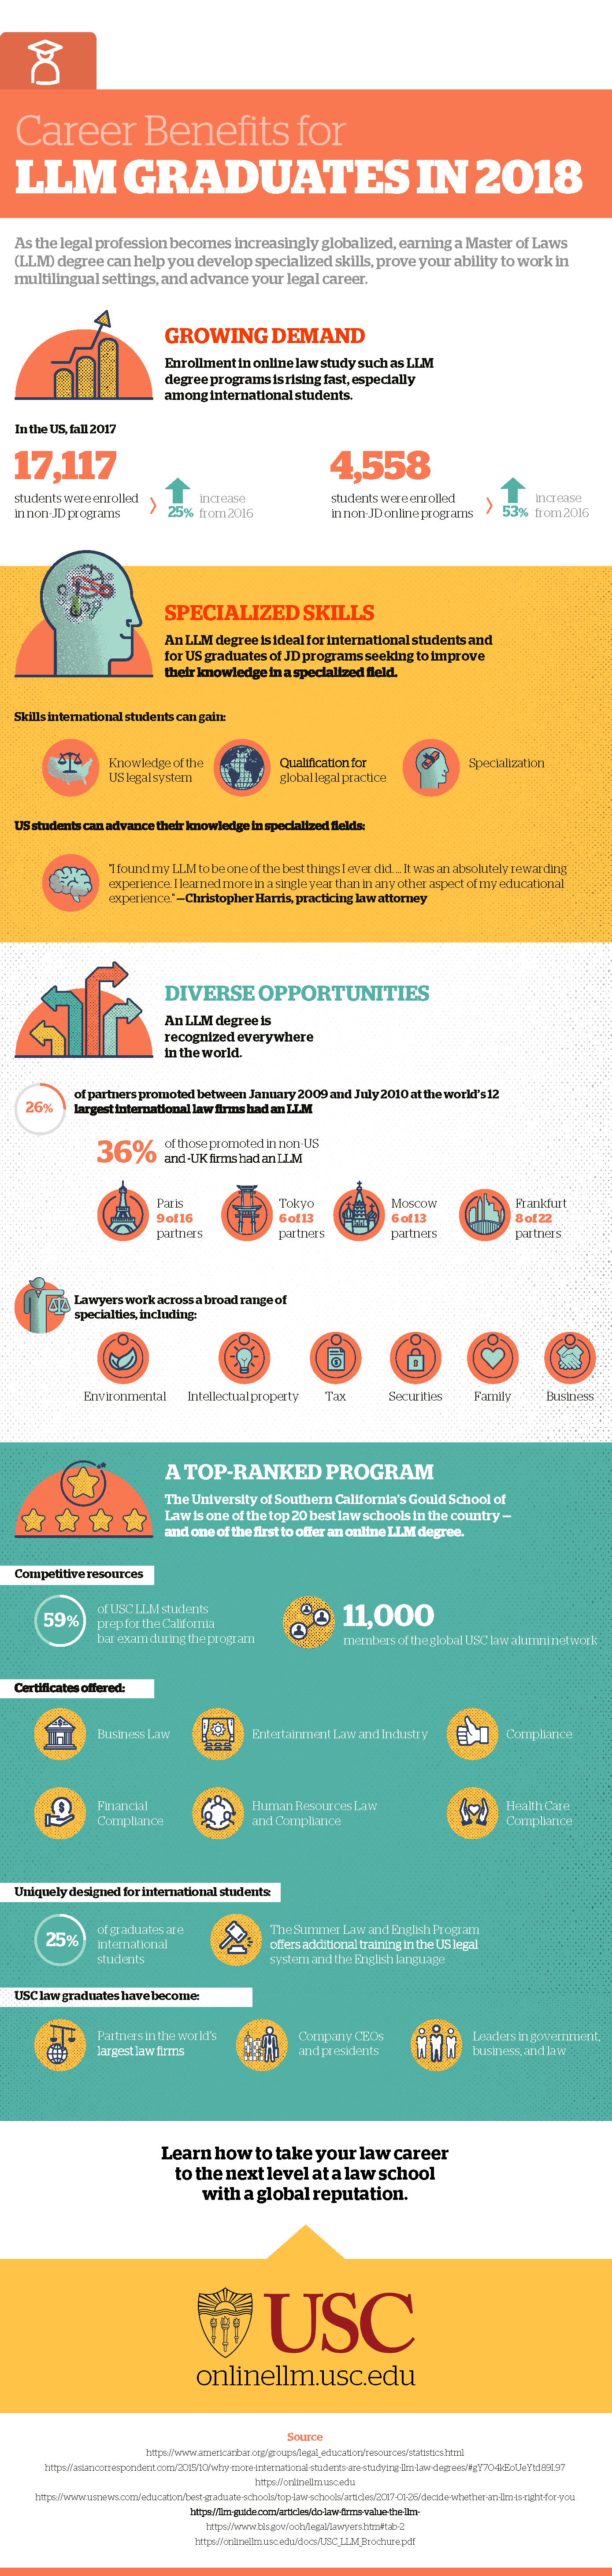 An infographic about the ways that an online law degree can enhance career opportunities globally, by USC Gould School of Law.